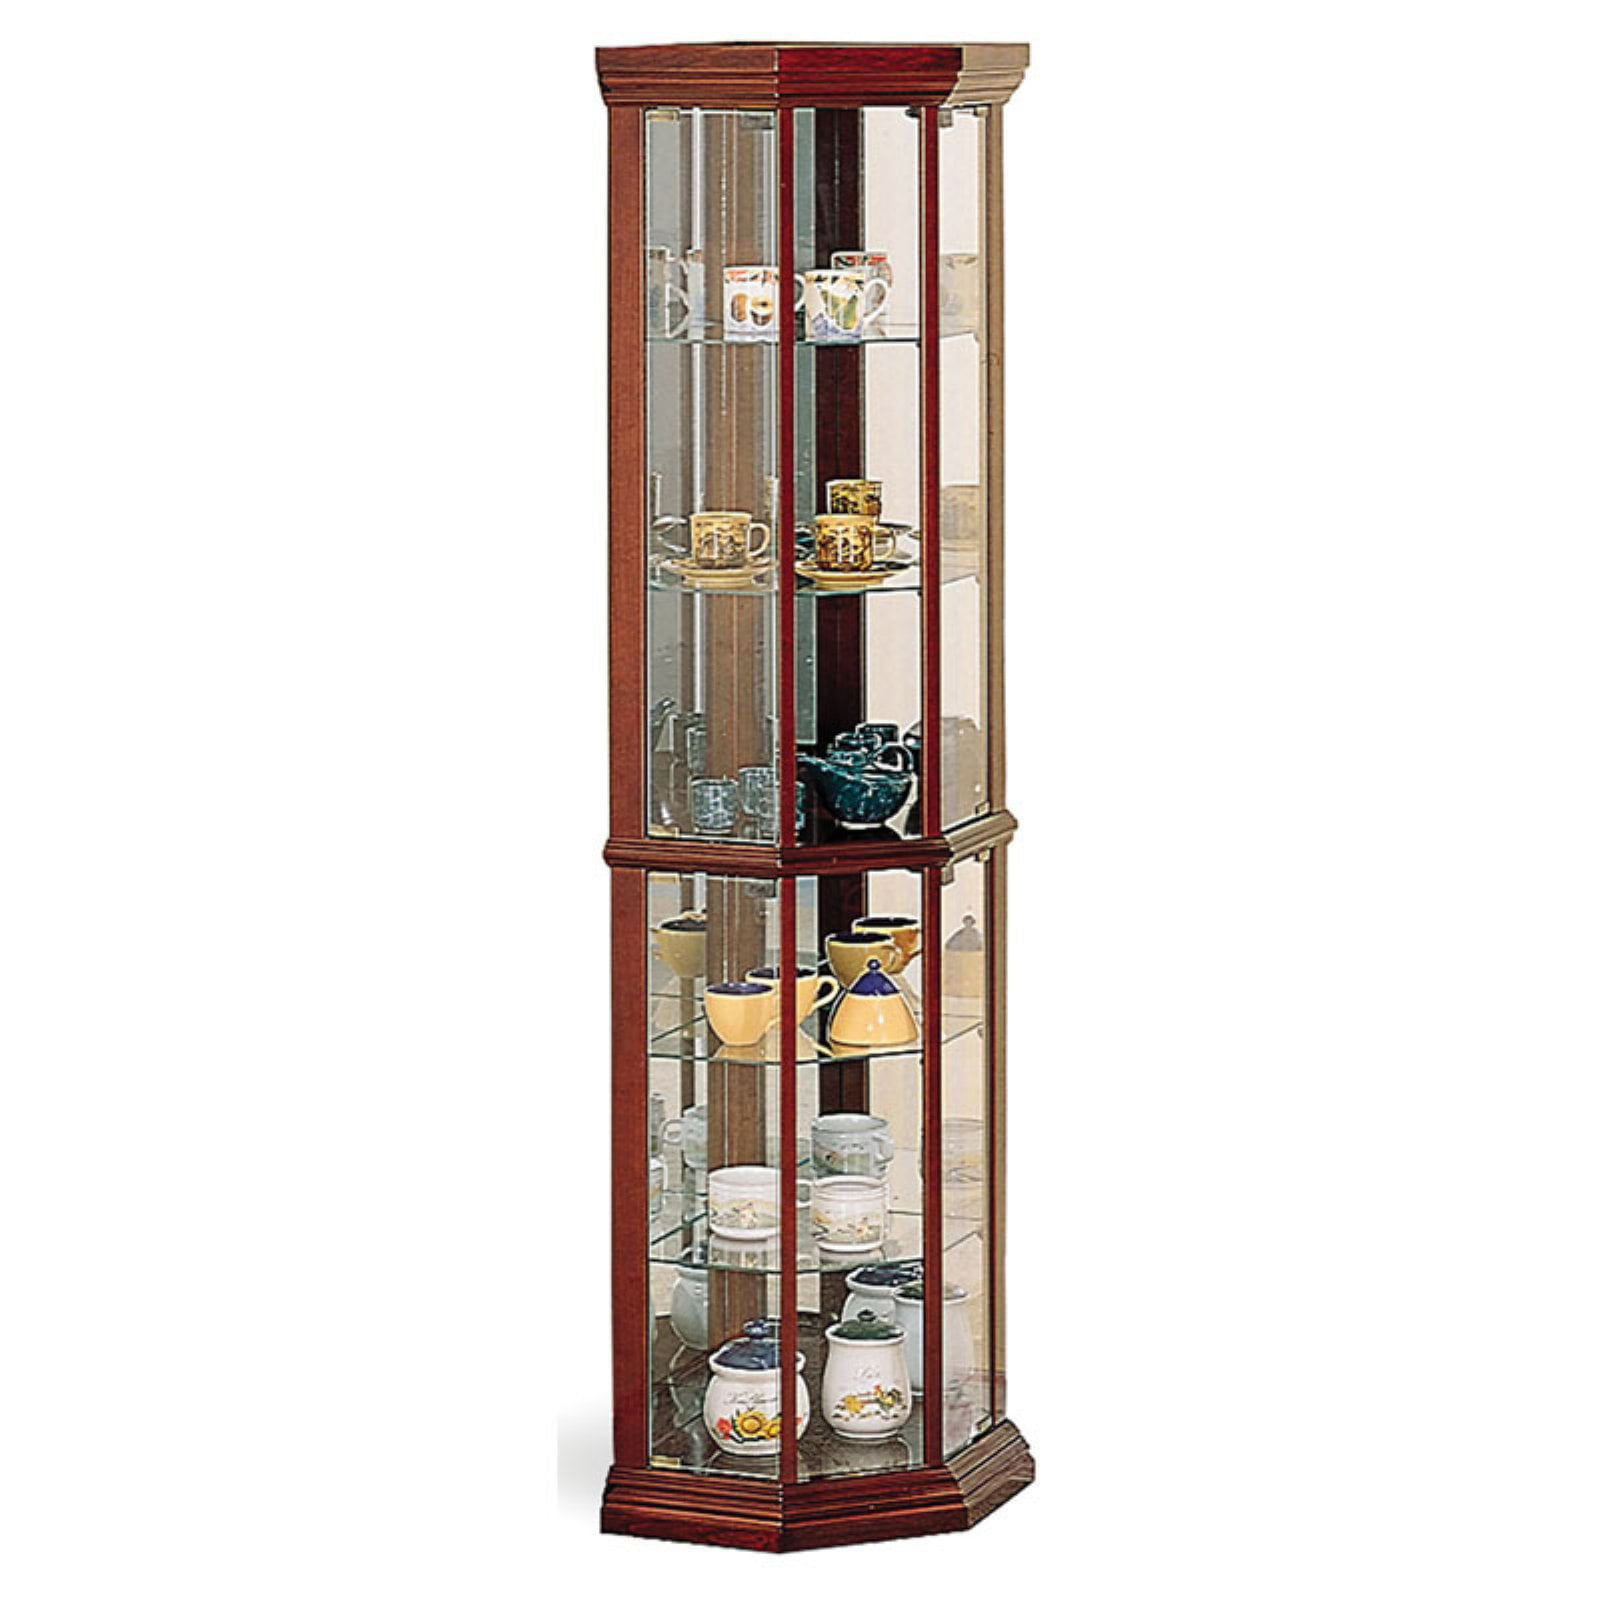 Coaster Company Corner Curio Cabinet, Medium Brown by Coaster Company